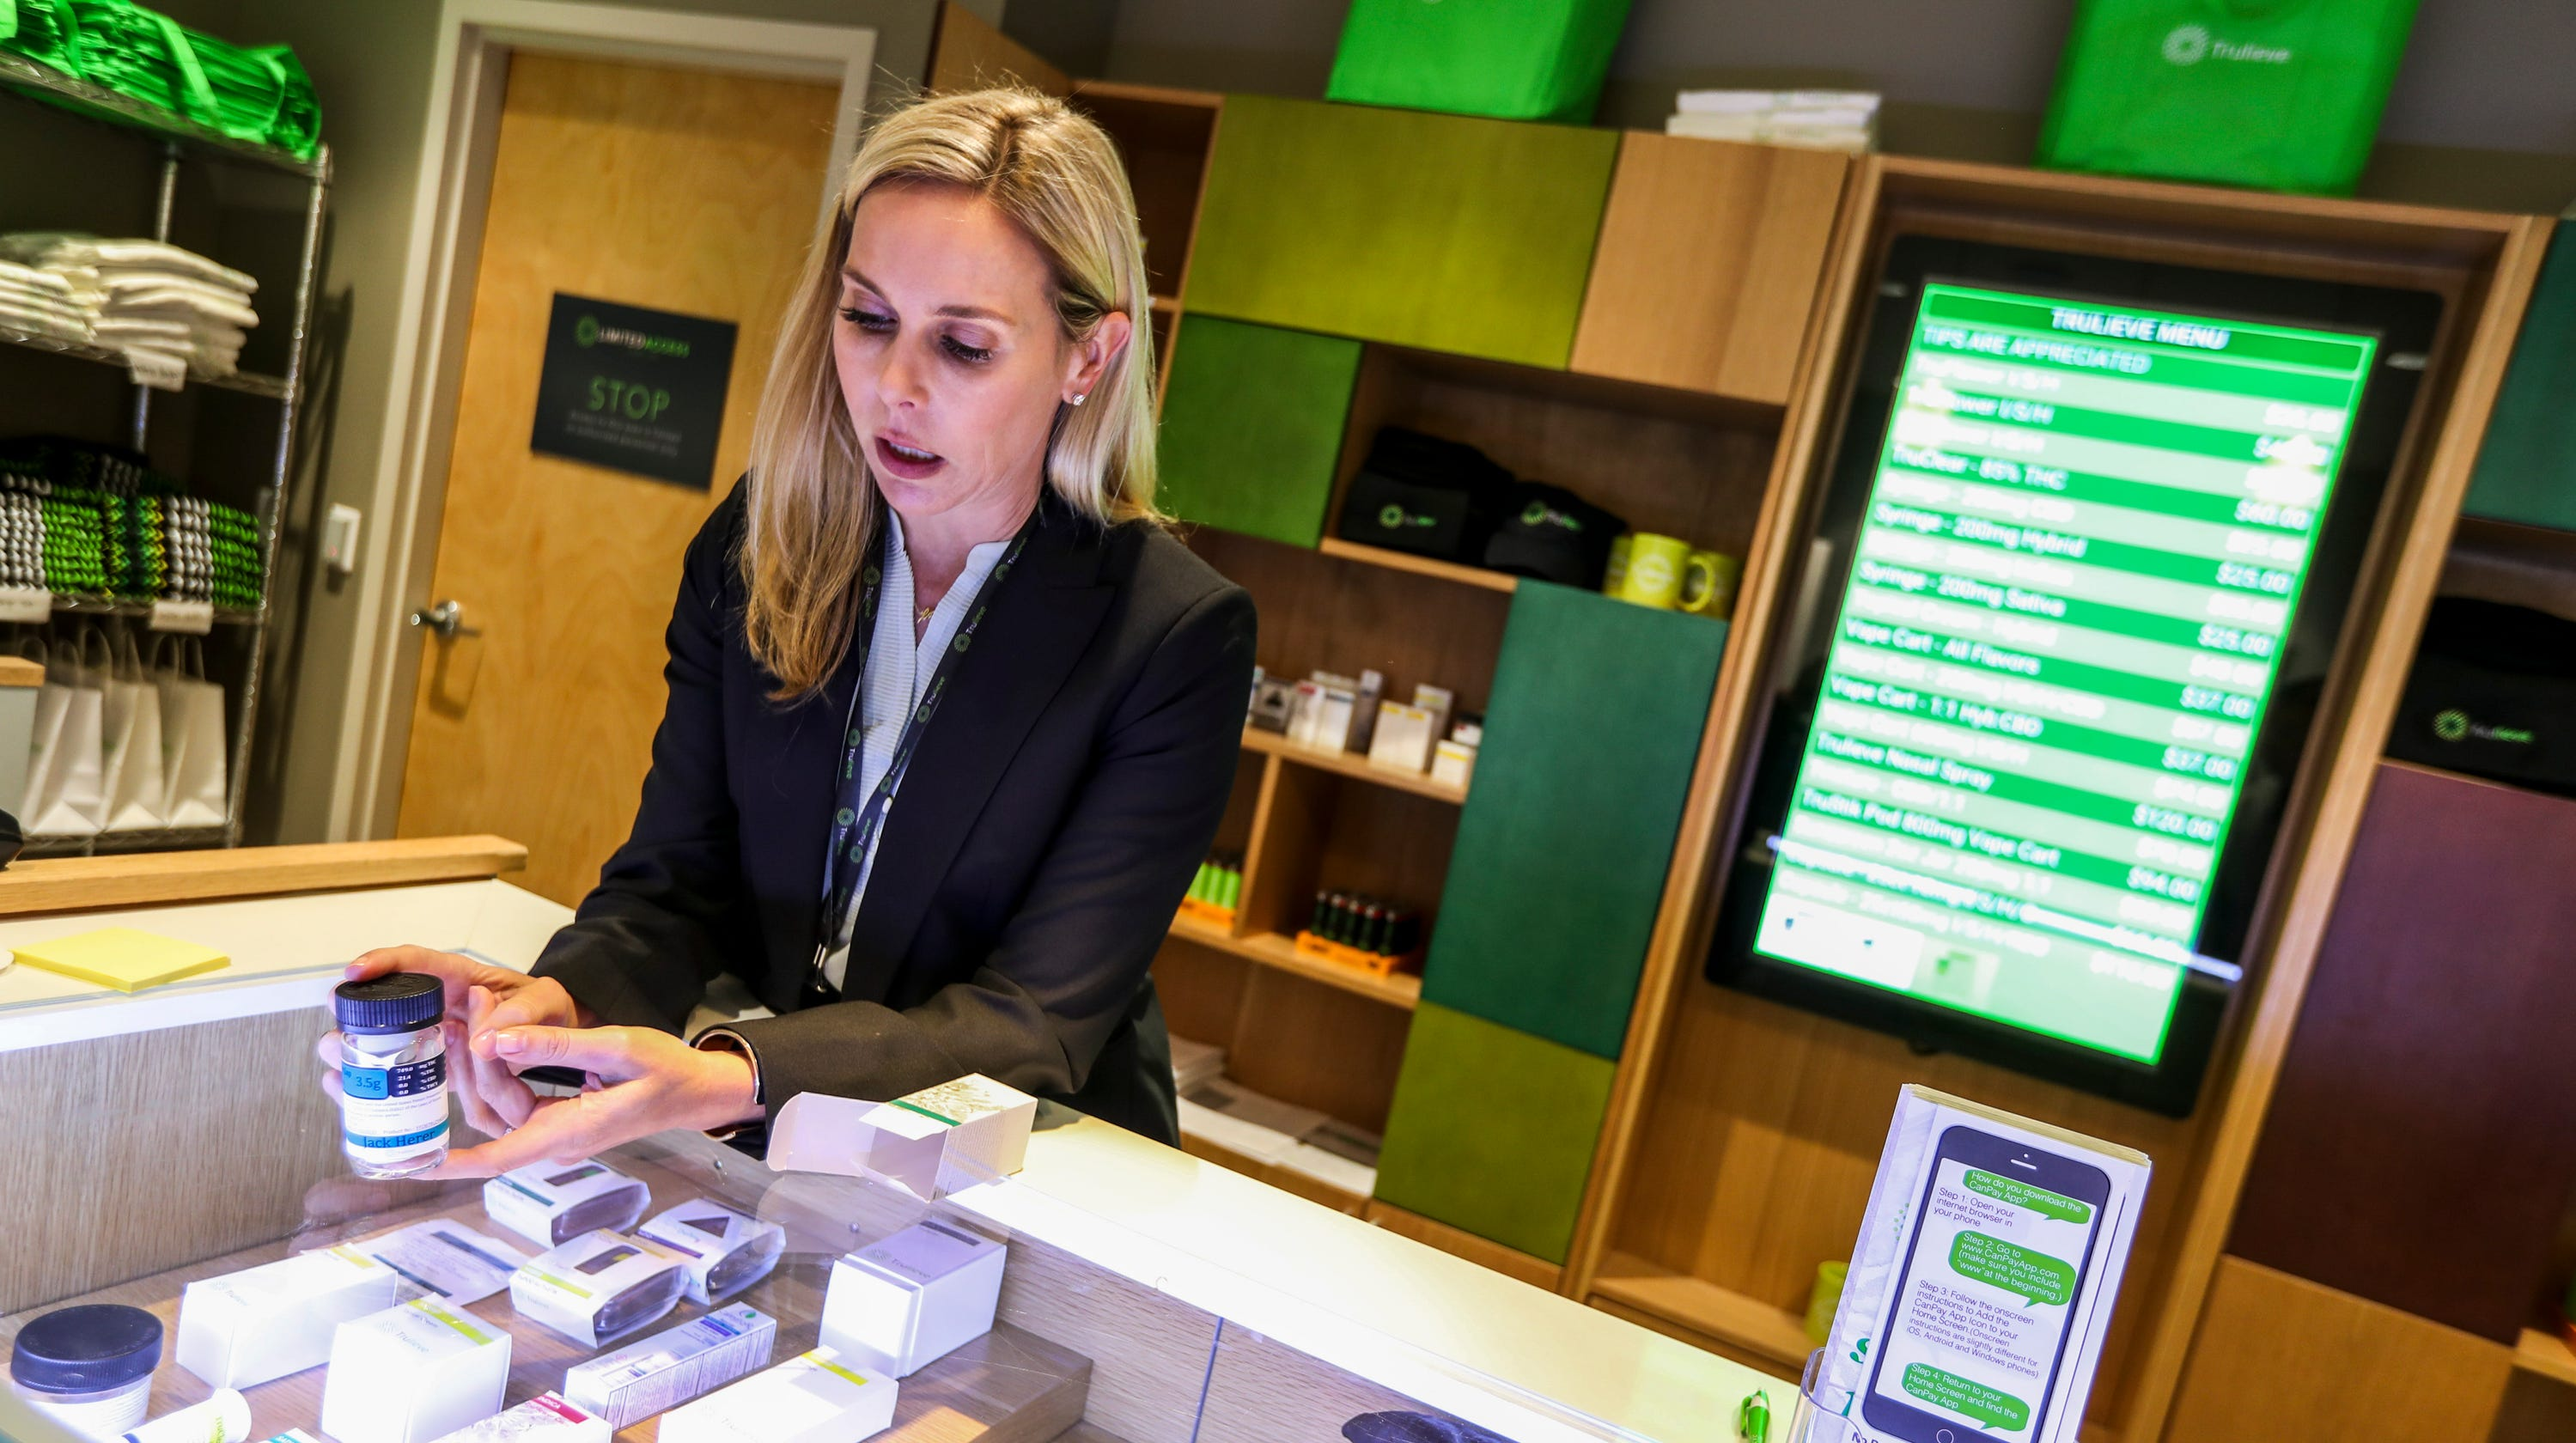 Smokable medical marijuana is legal, but sellers are waiting for